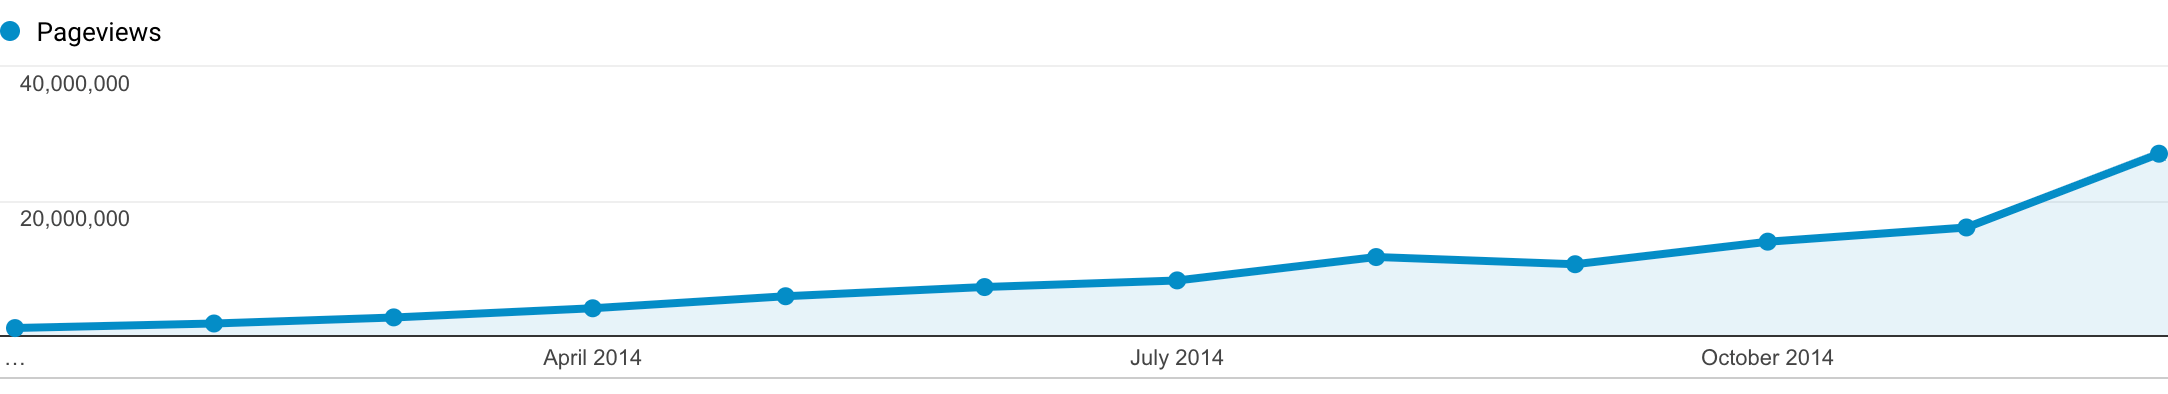 analytics-2014-pageviews-1